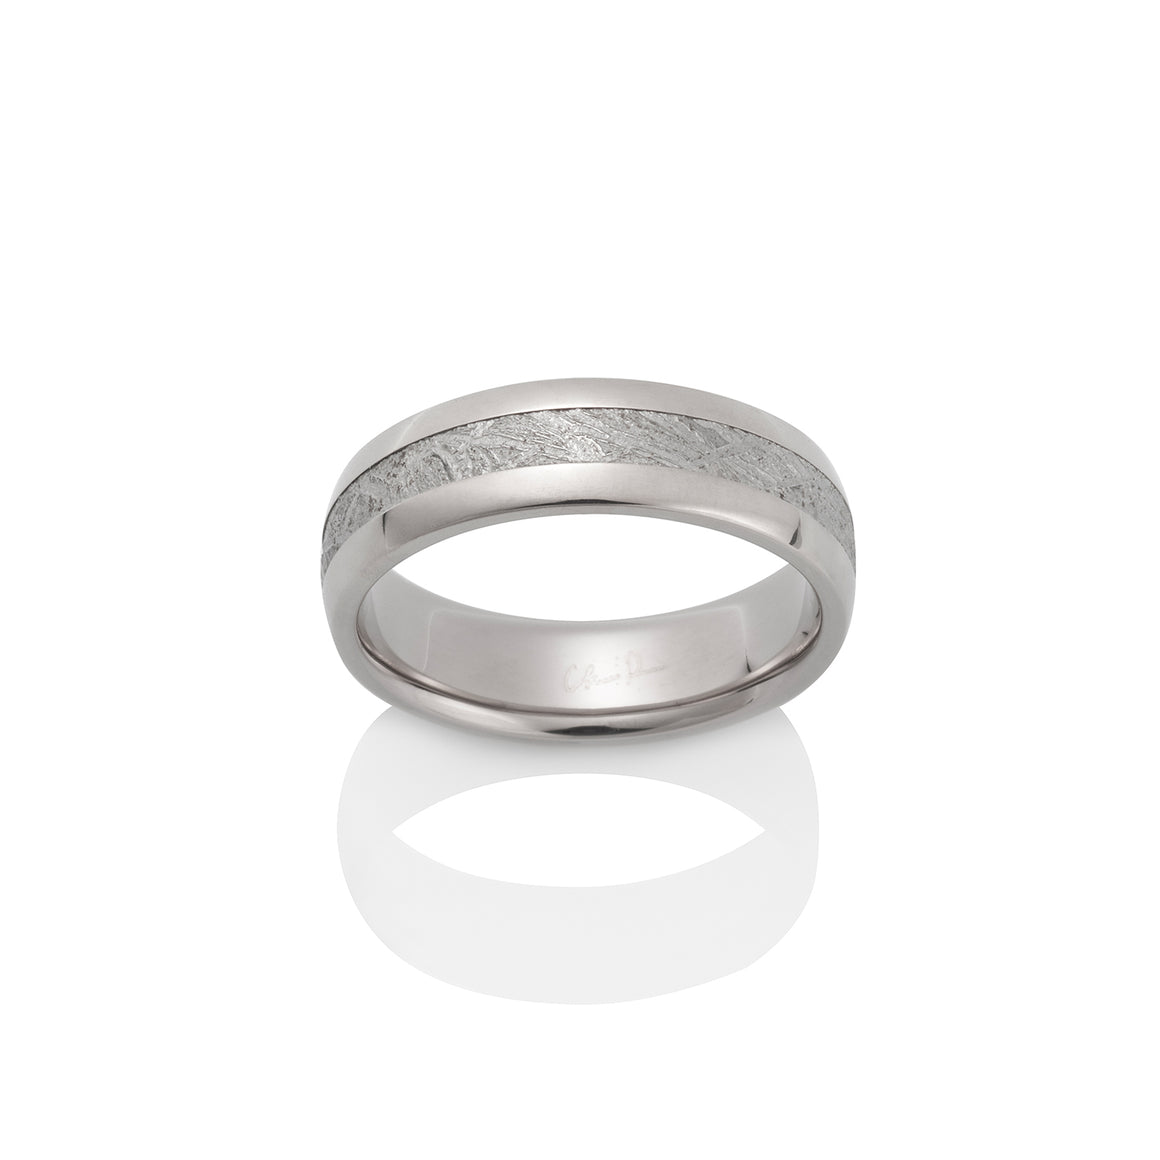 Chris Ploof Canopus Meteorite 18k Palladium White Gold Ring